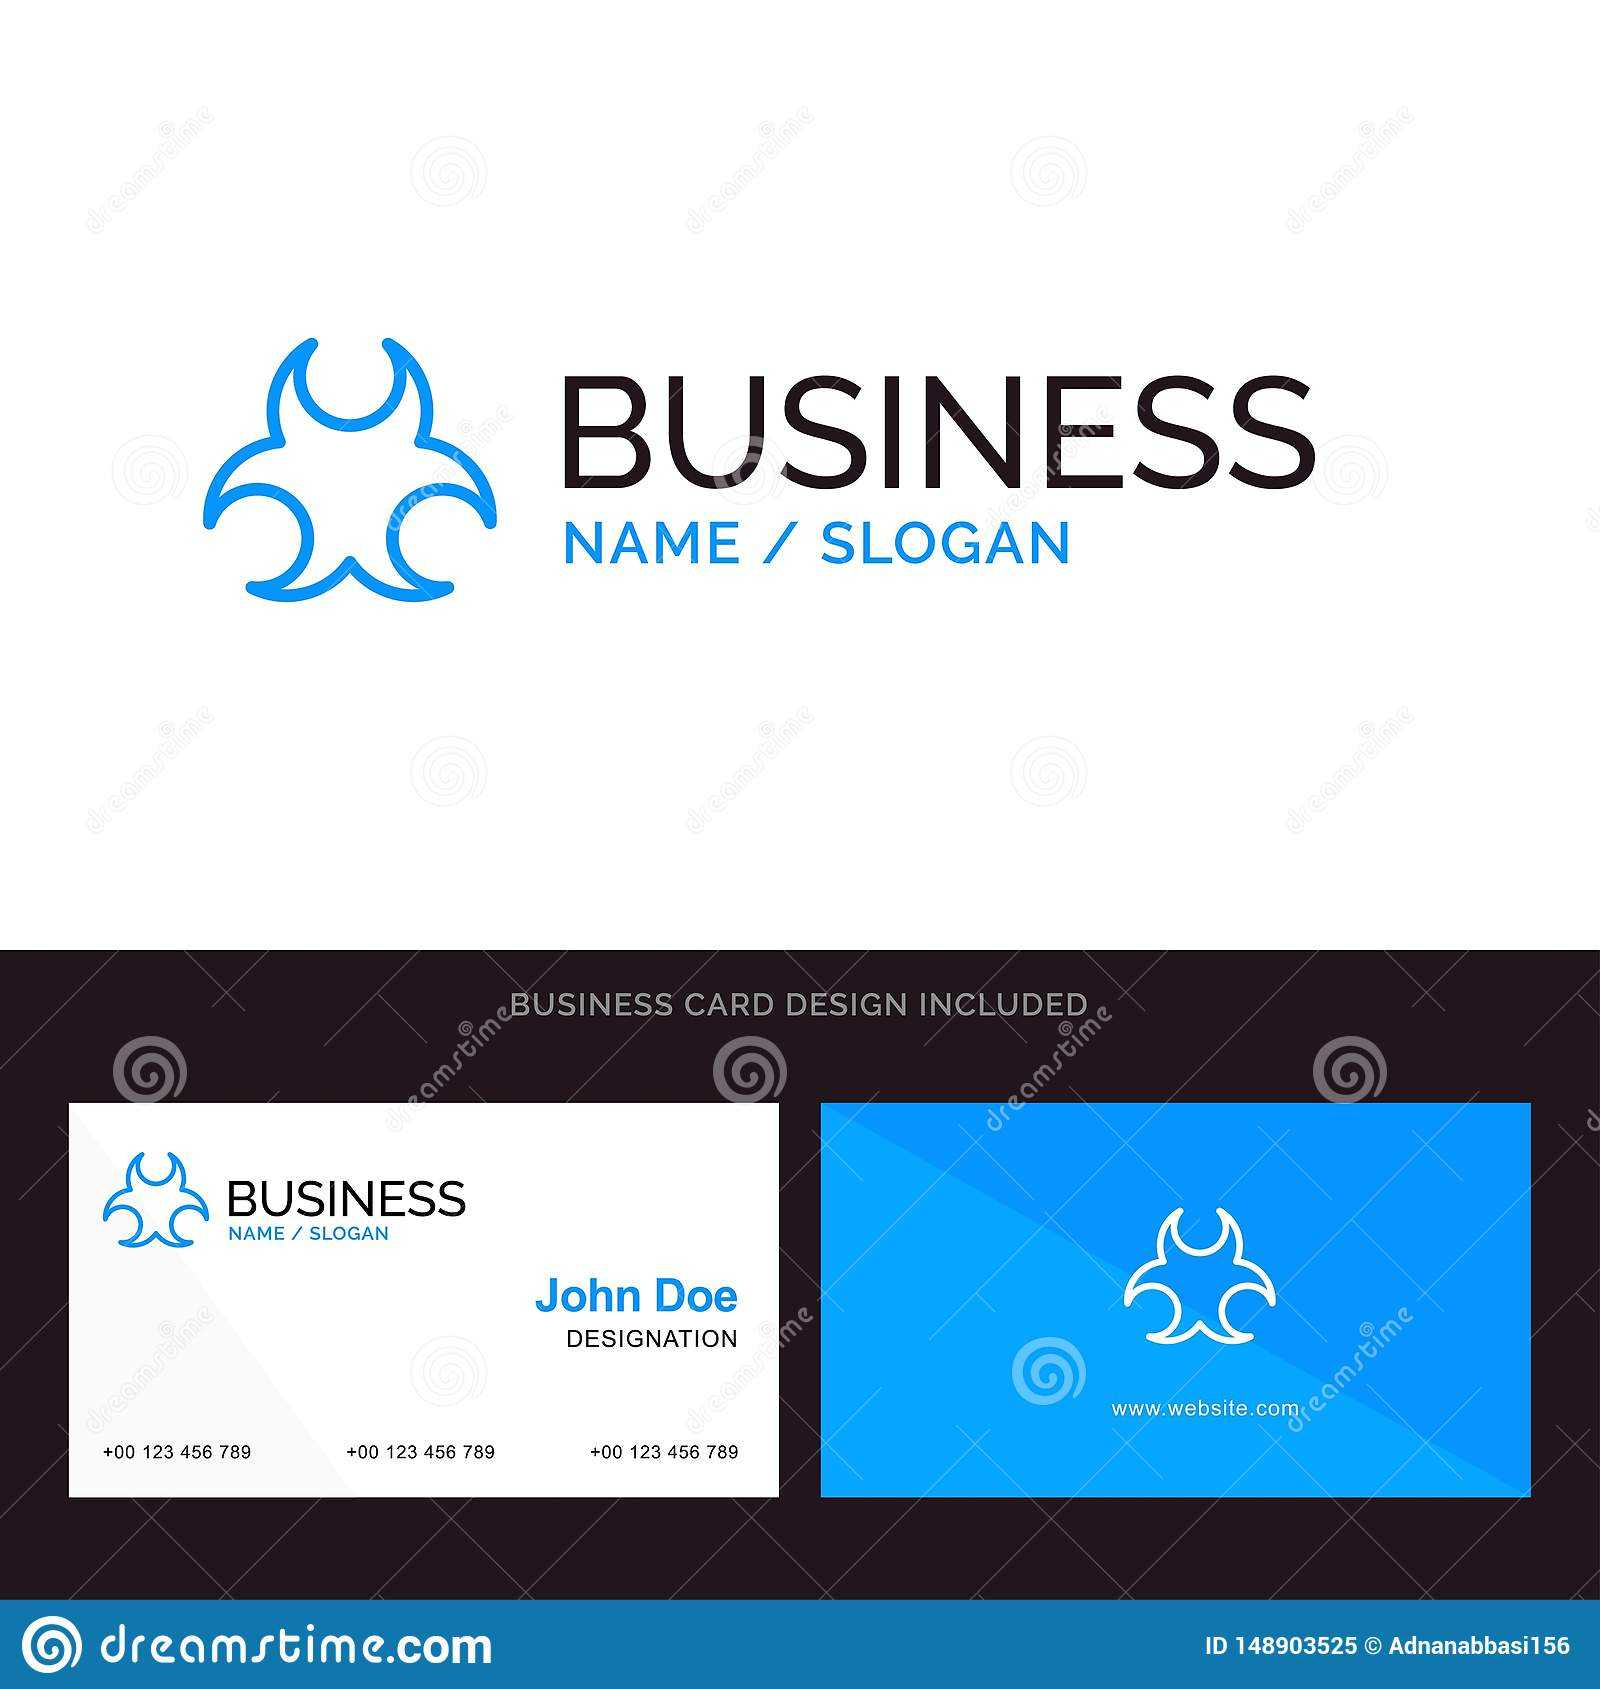 Bio, Hazard, Sign, Science Blue Business Logo And Business In Bio Card Template